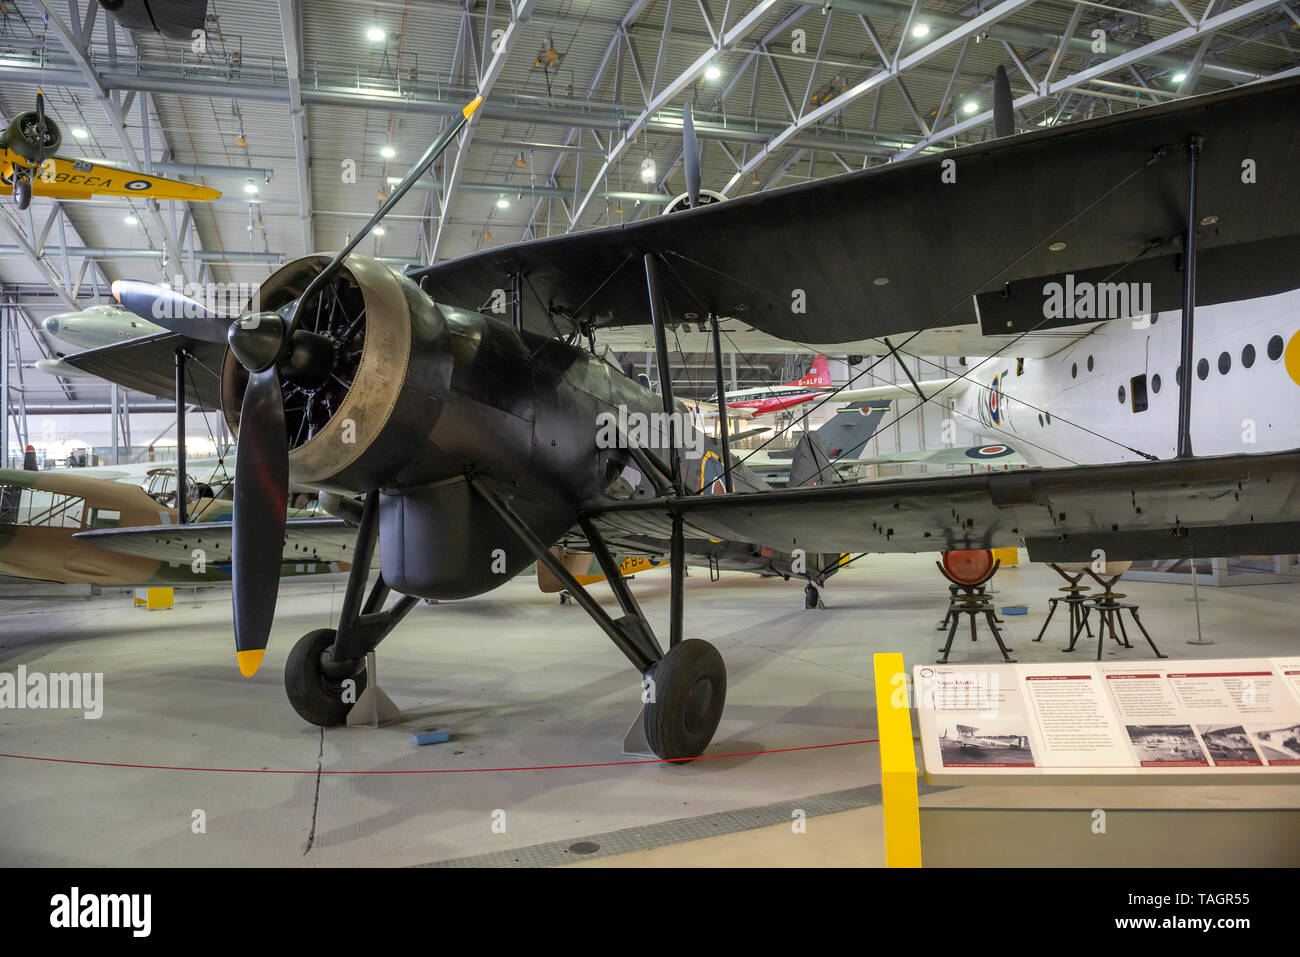 World War Two Fairey Swordfish biplane at the Imperial War Museum, Duxford, Cambridgeshire, UK - Stock Image